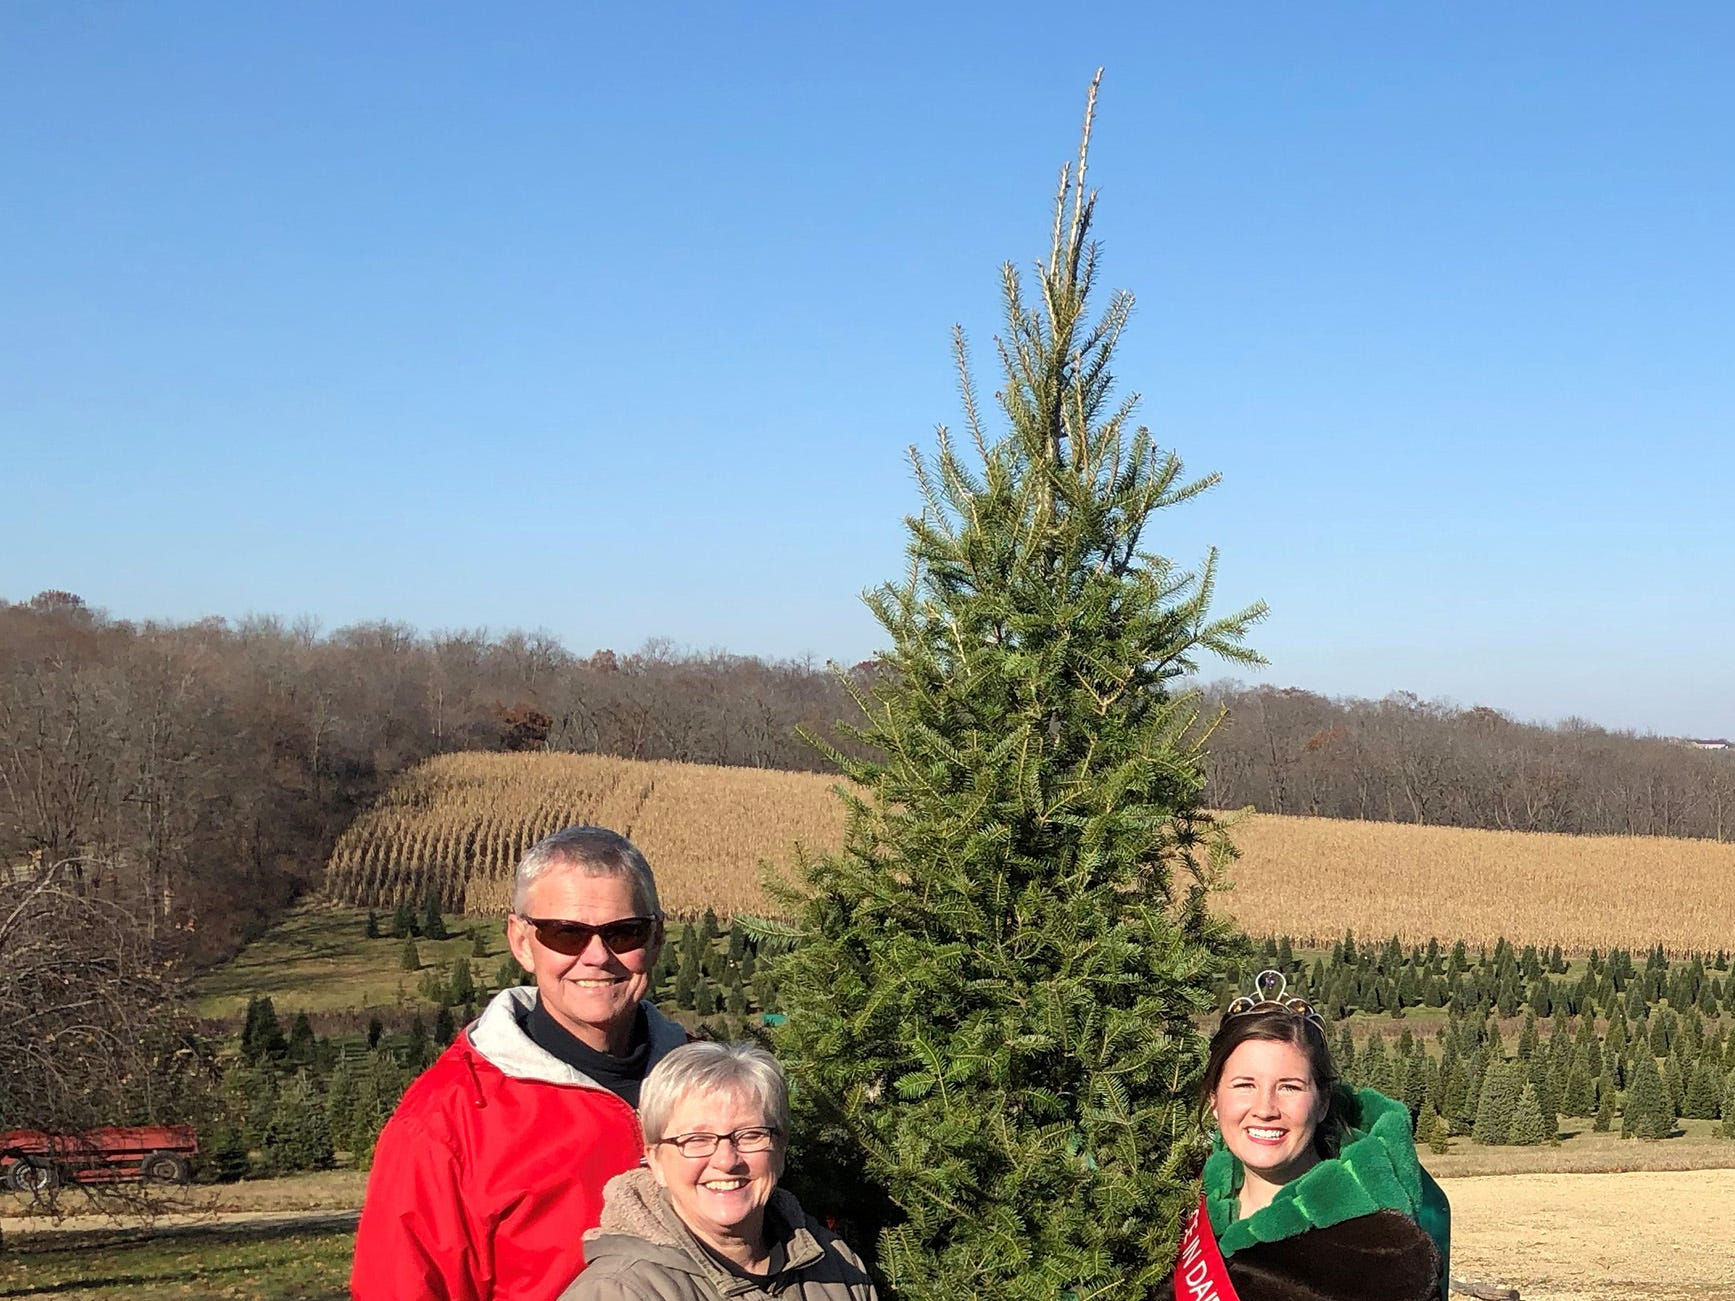 Alice in Dairyland Kaitlyn Riley (right) is pictured with owners of Winterberry Tree Farm Greg and Vickie Lancaster after Riley helped cut down a tree to mark the 2018 Christmas tree season.